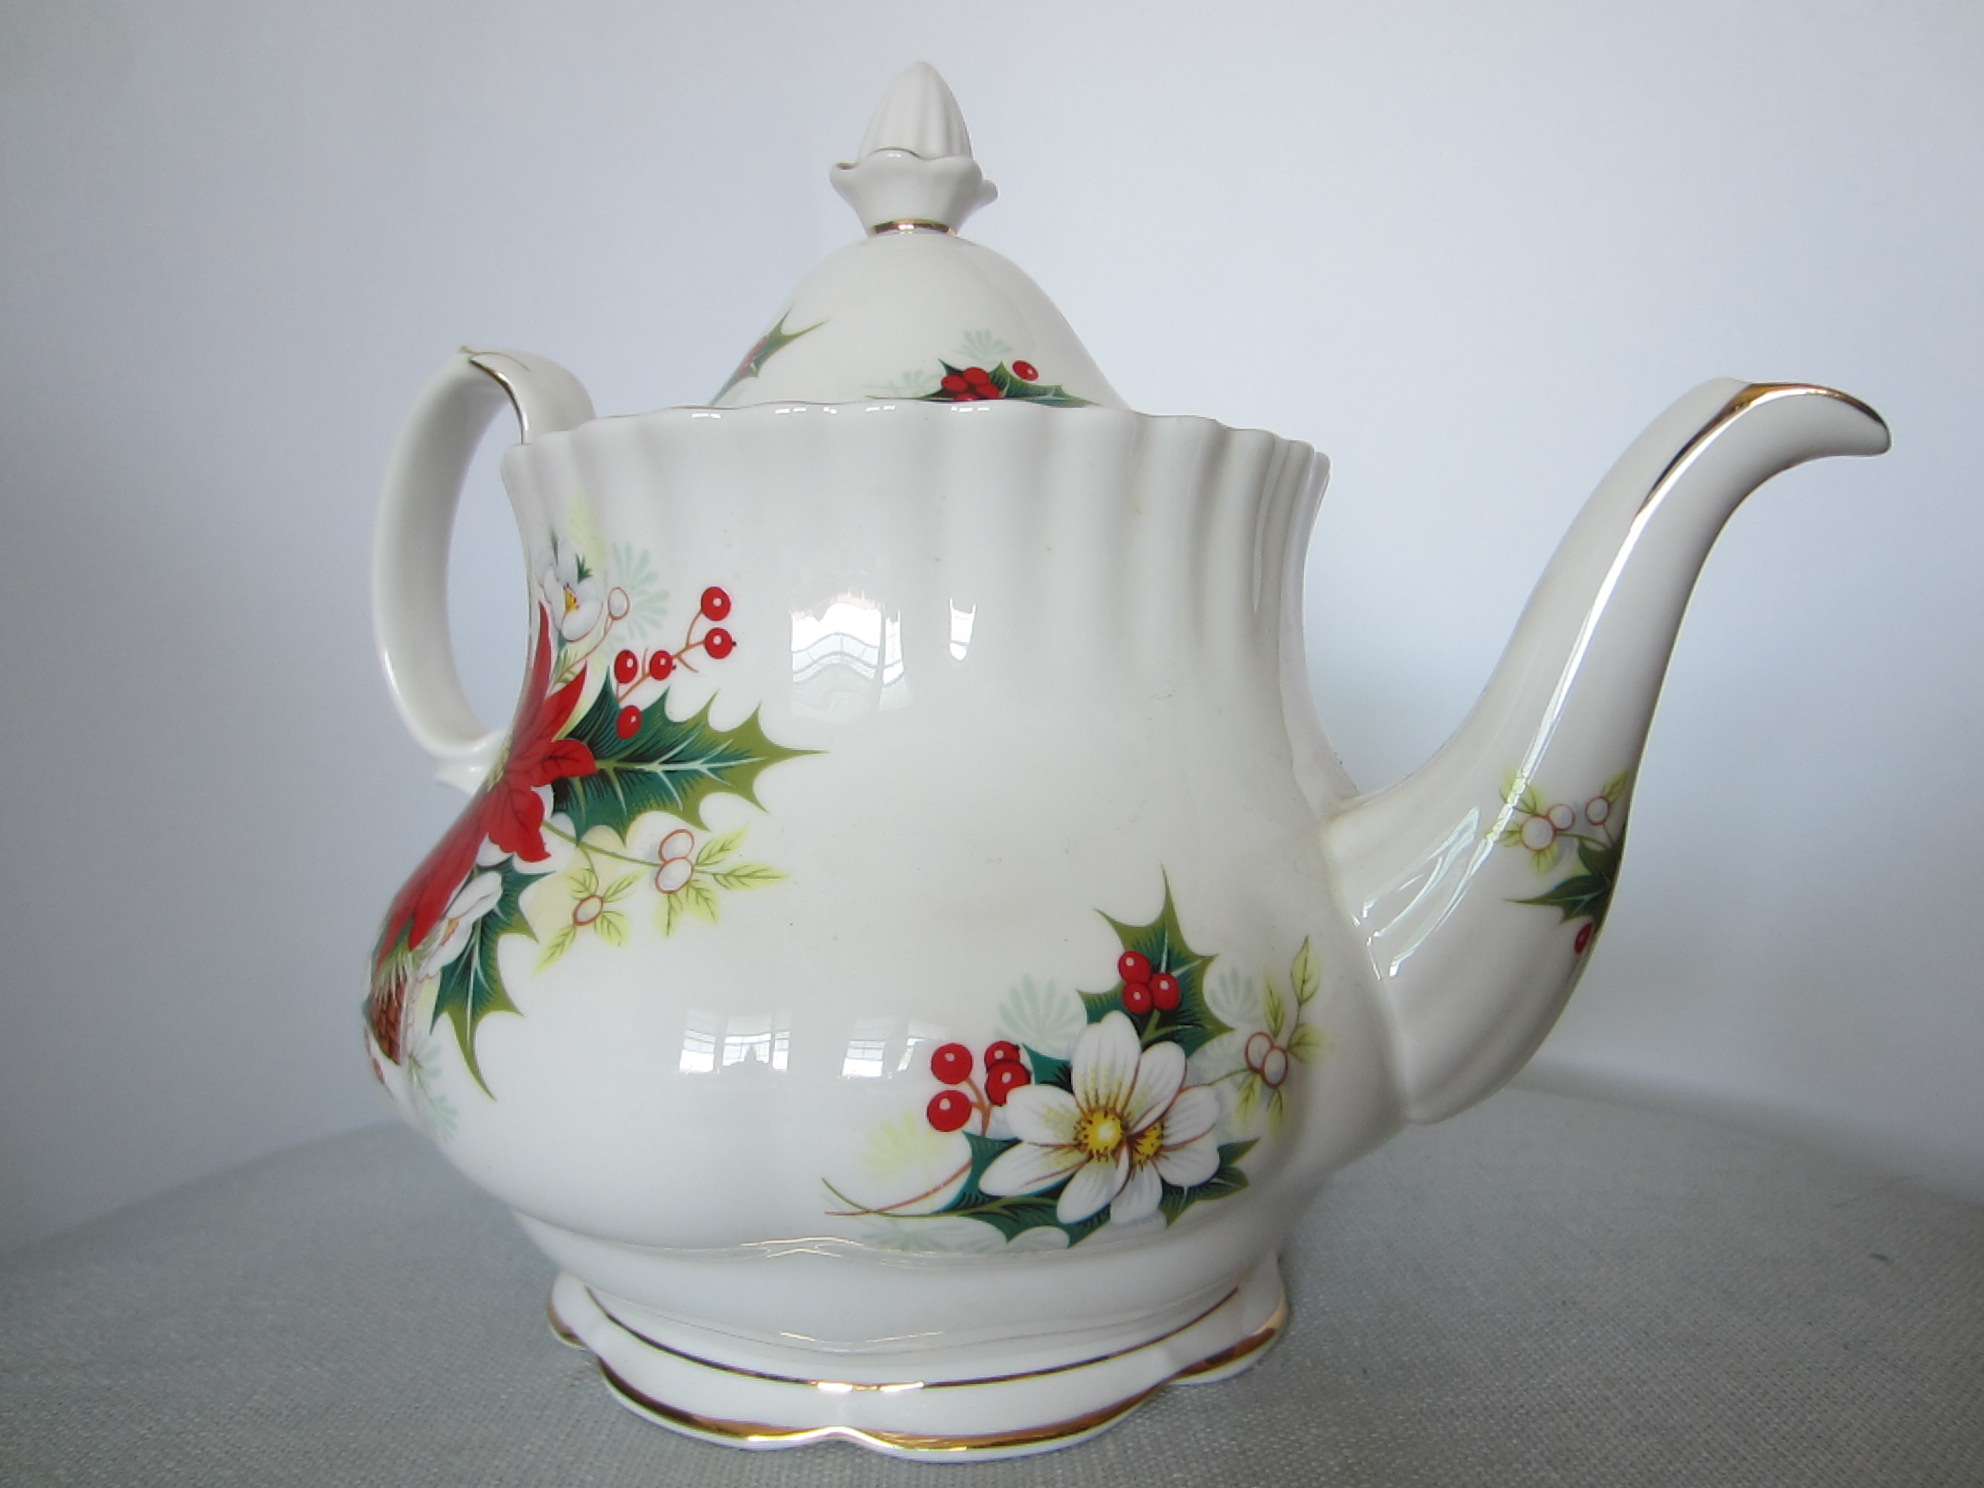 Making Tea In A Teapot Royal Albert Bone China England Poinsettia Teapot Signed